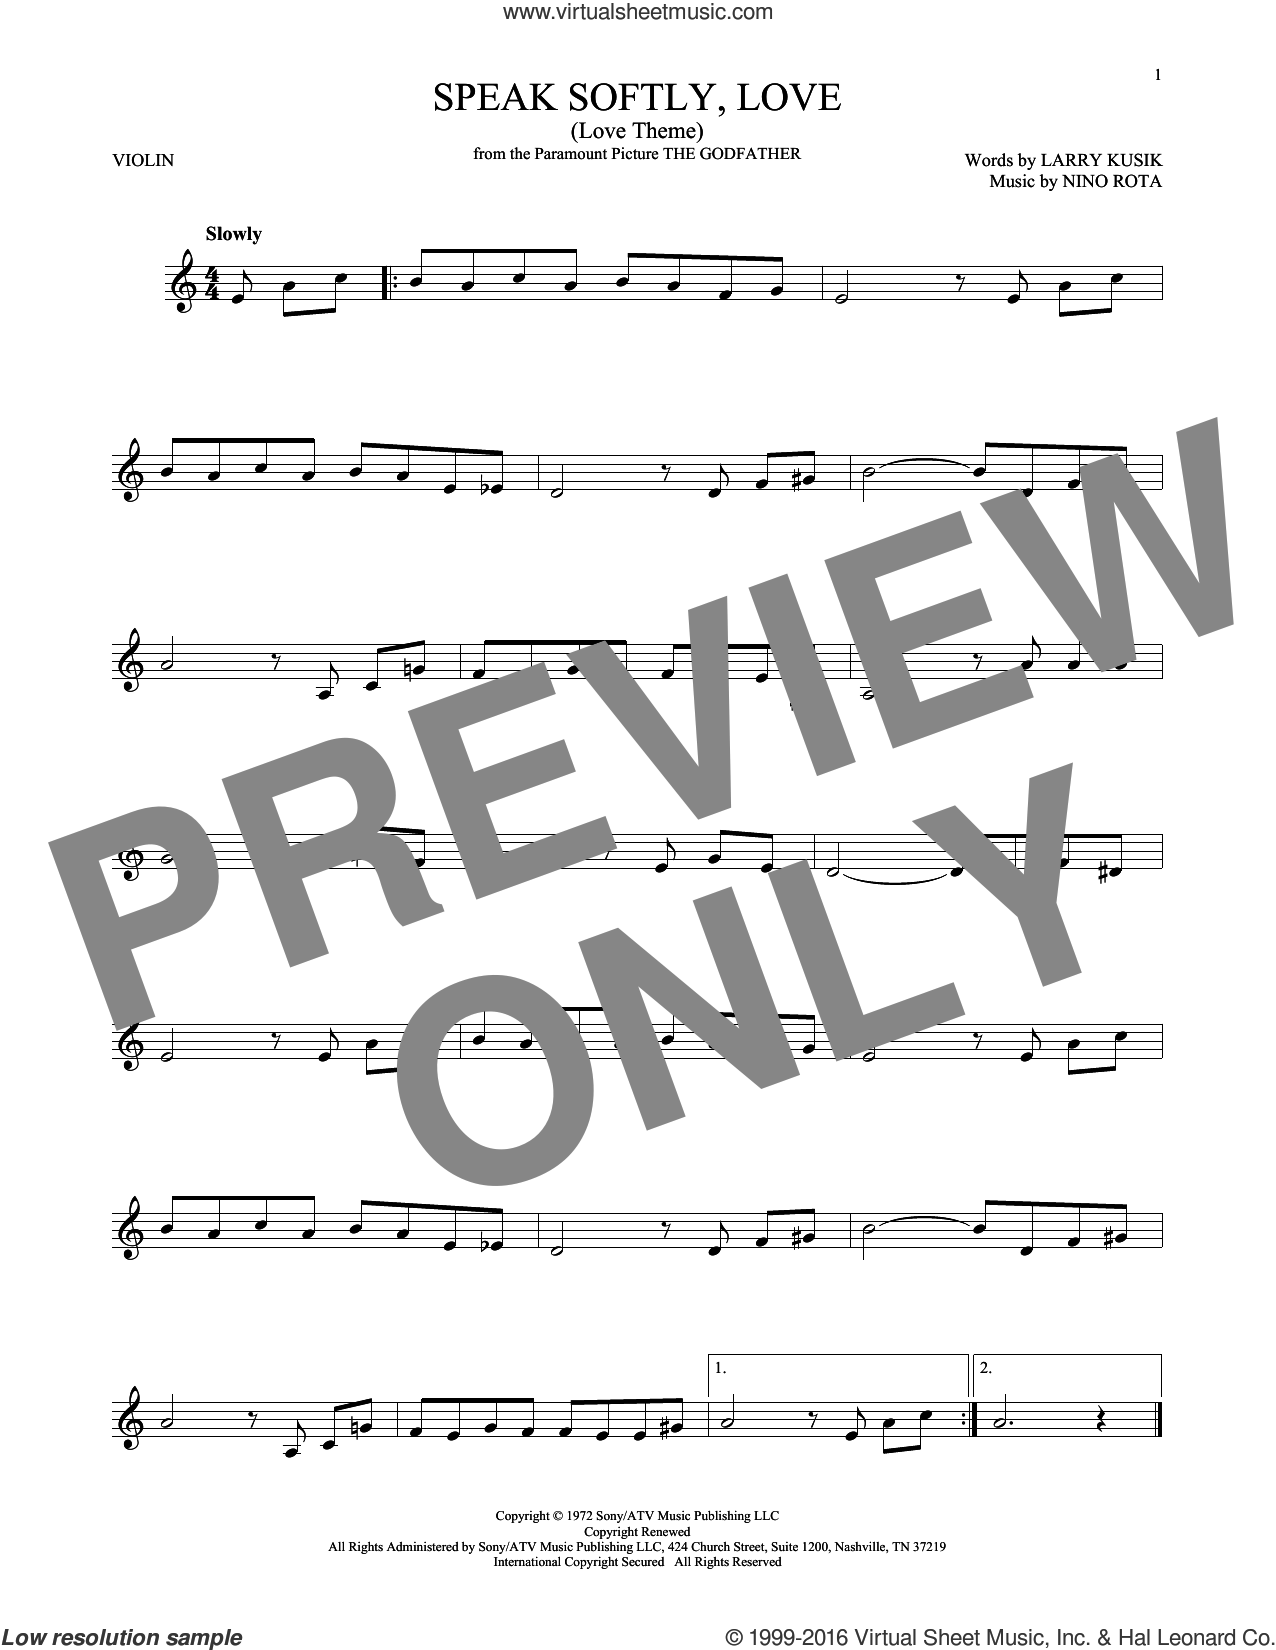 Speak Softly, Love (Love Theme) sheet music for violin solo by Andy Williams, Larry Kusik and Nino Rota, intermediate skill level